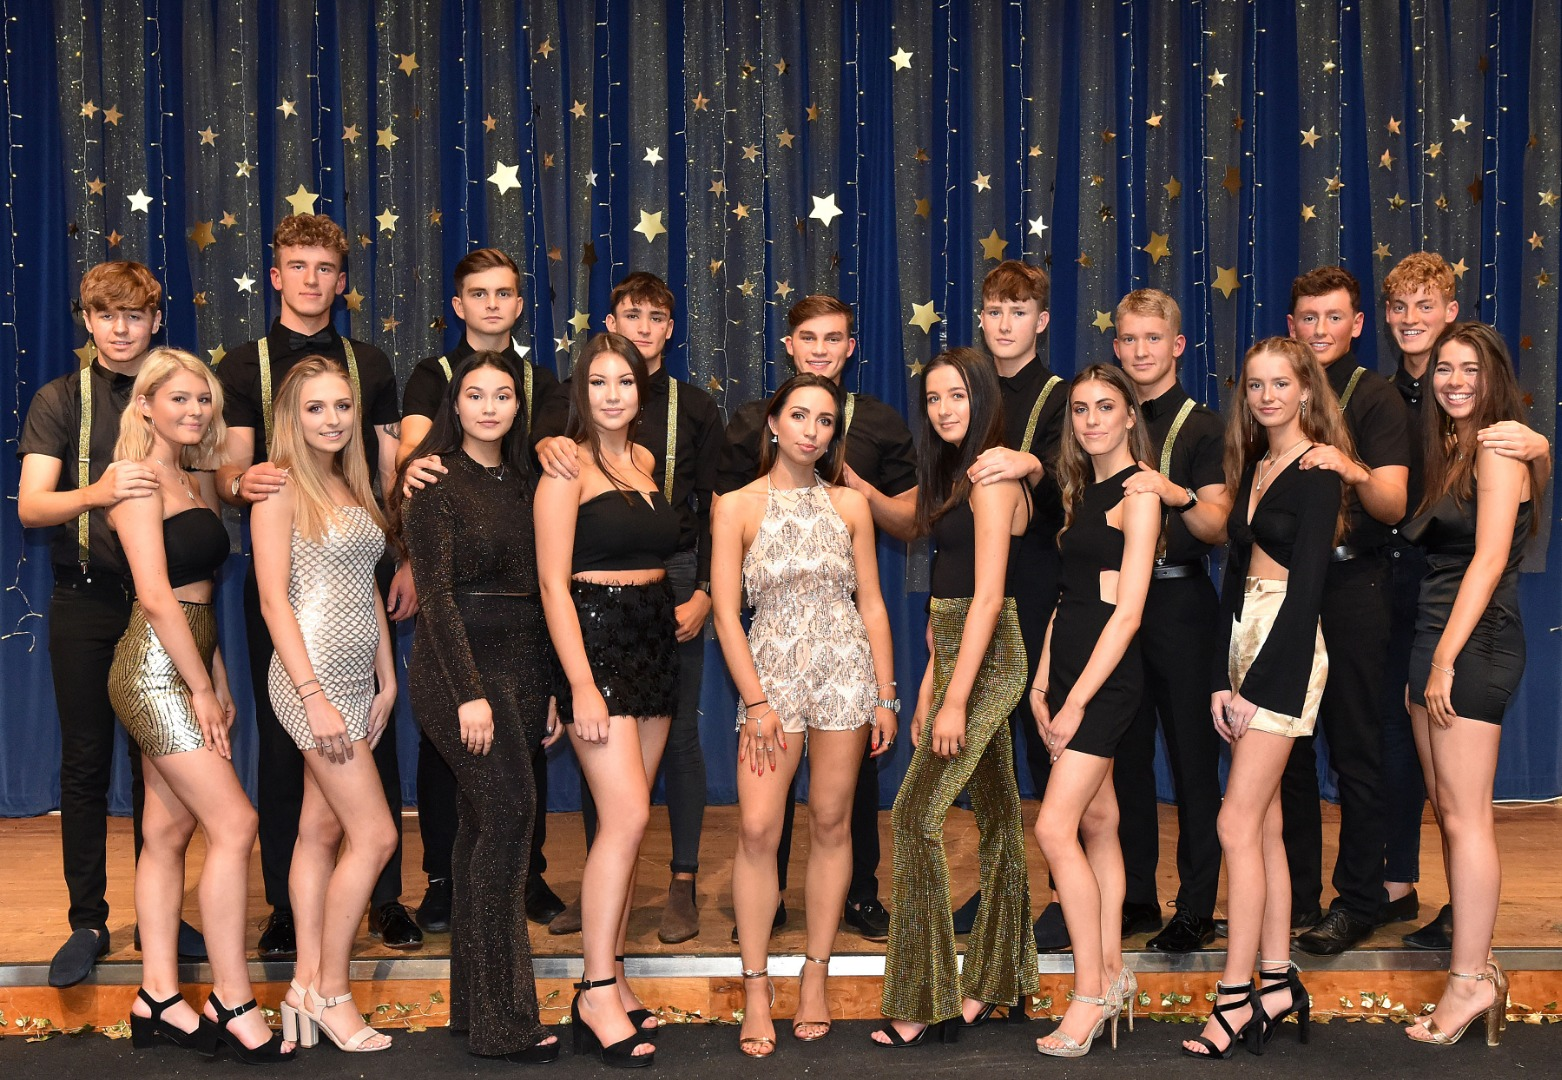 KING'S FASHION SHOW RAISES RECORD FUNDS